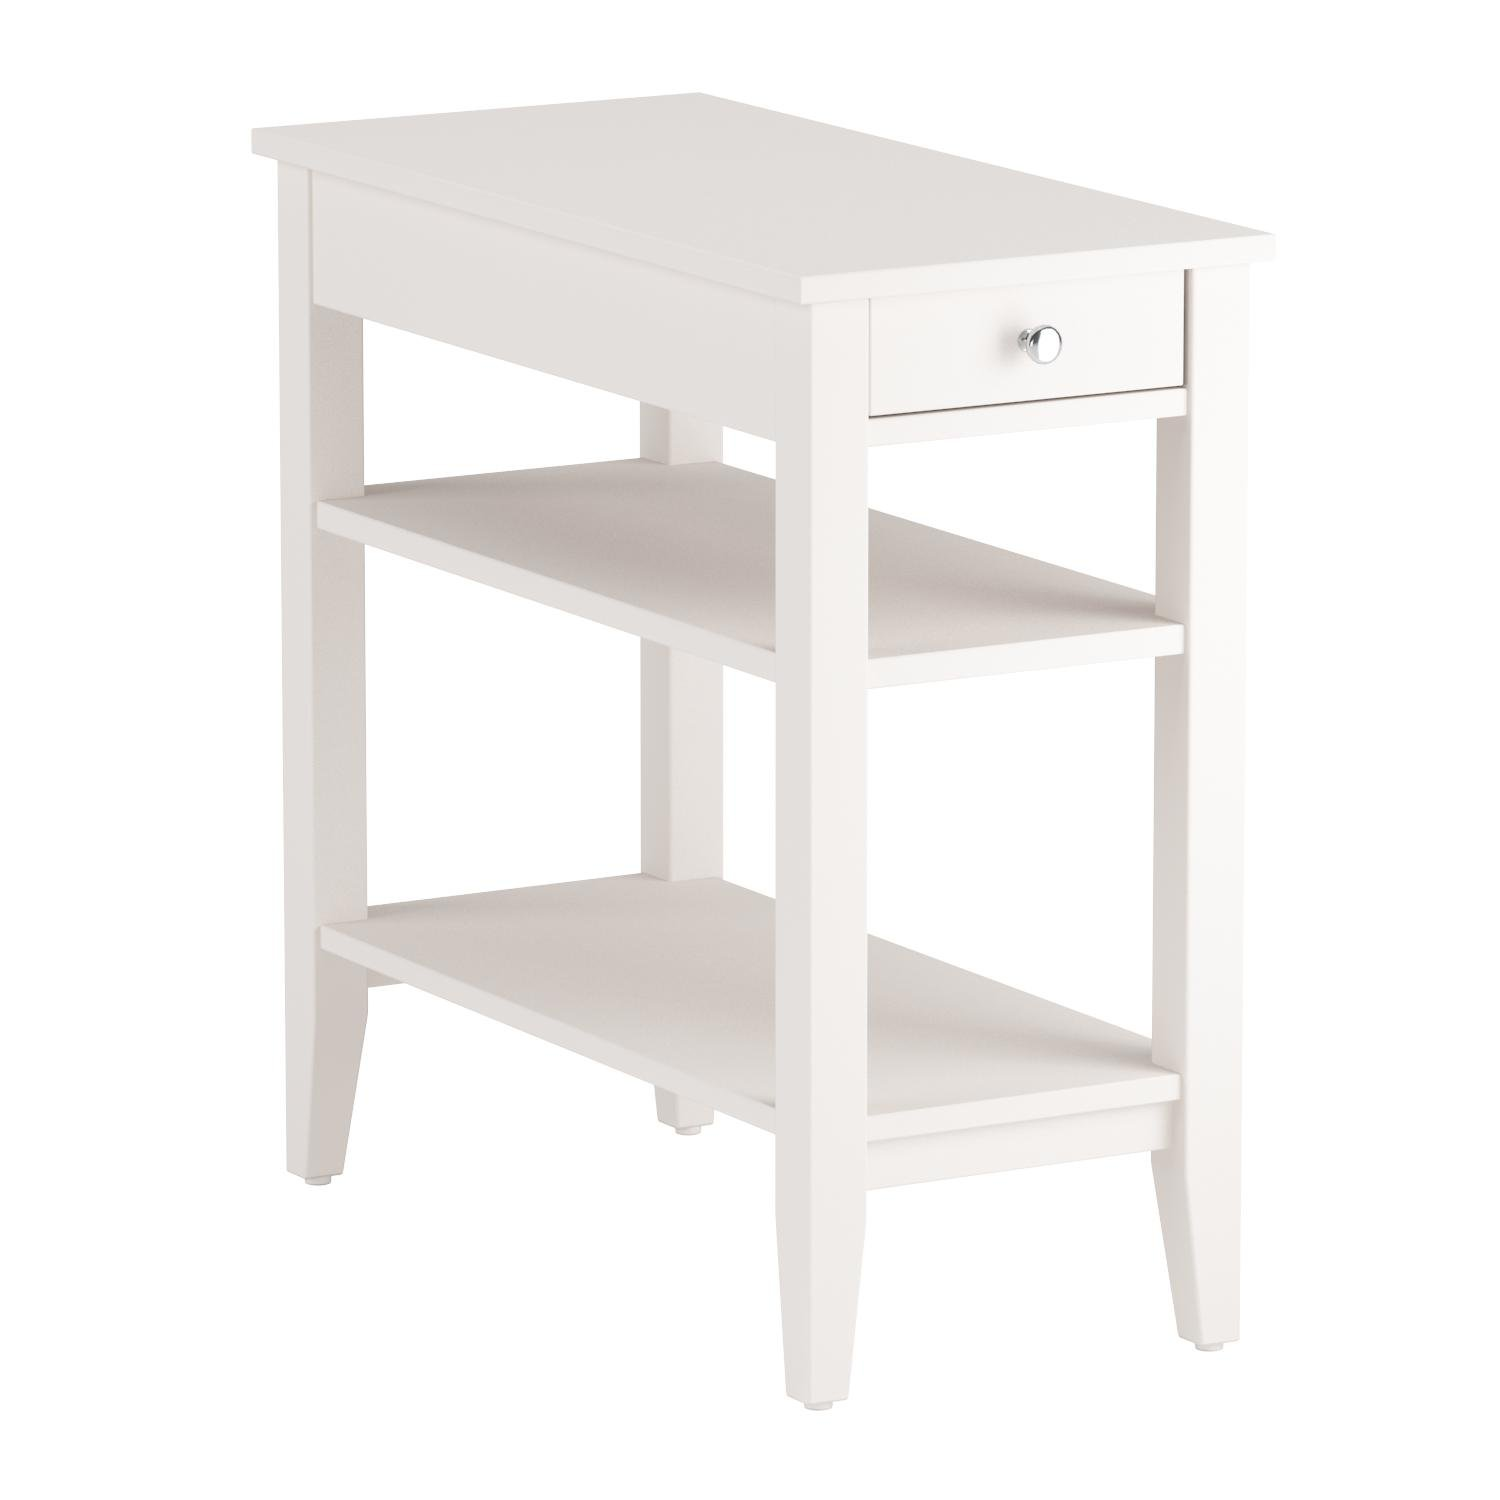 Convenience Concepts American Heritage Collection 3-Tier End Table with Drawer, White by Convenience Concepts